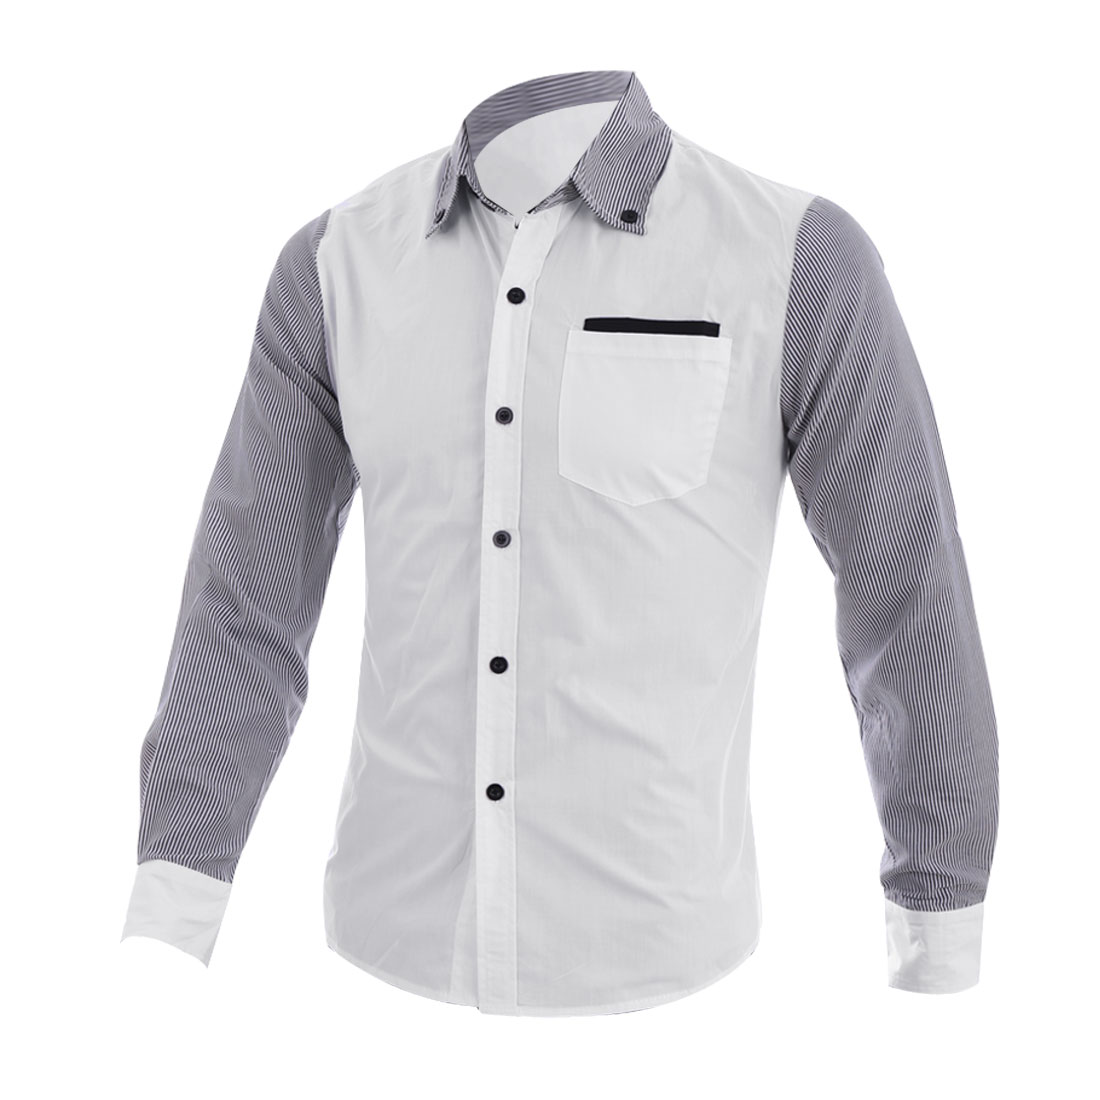 Man Chic Point Collar Long Sleeve Striped Button Down White Shirt S